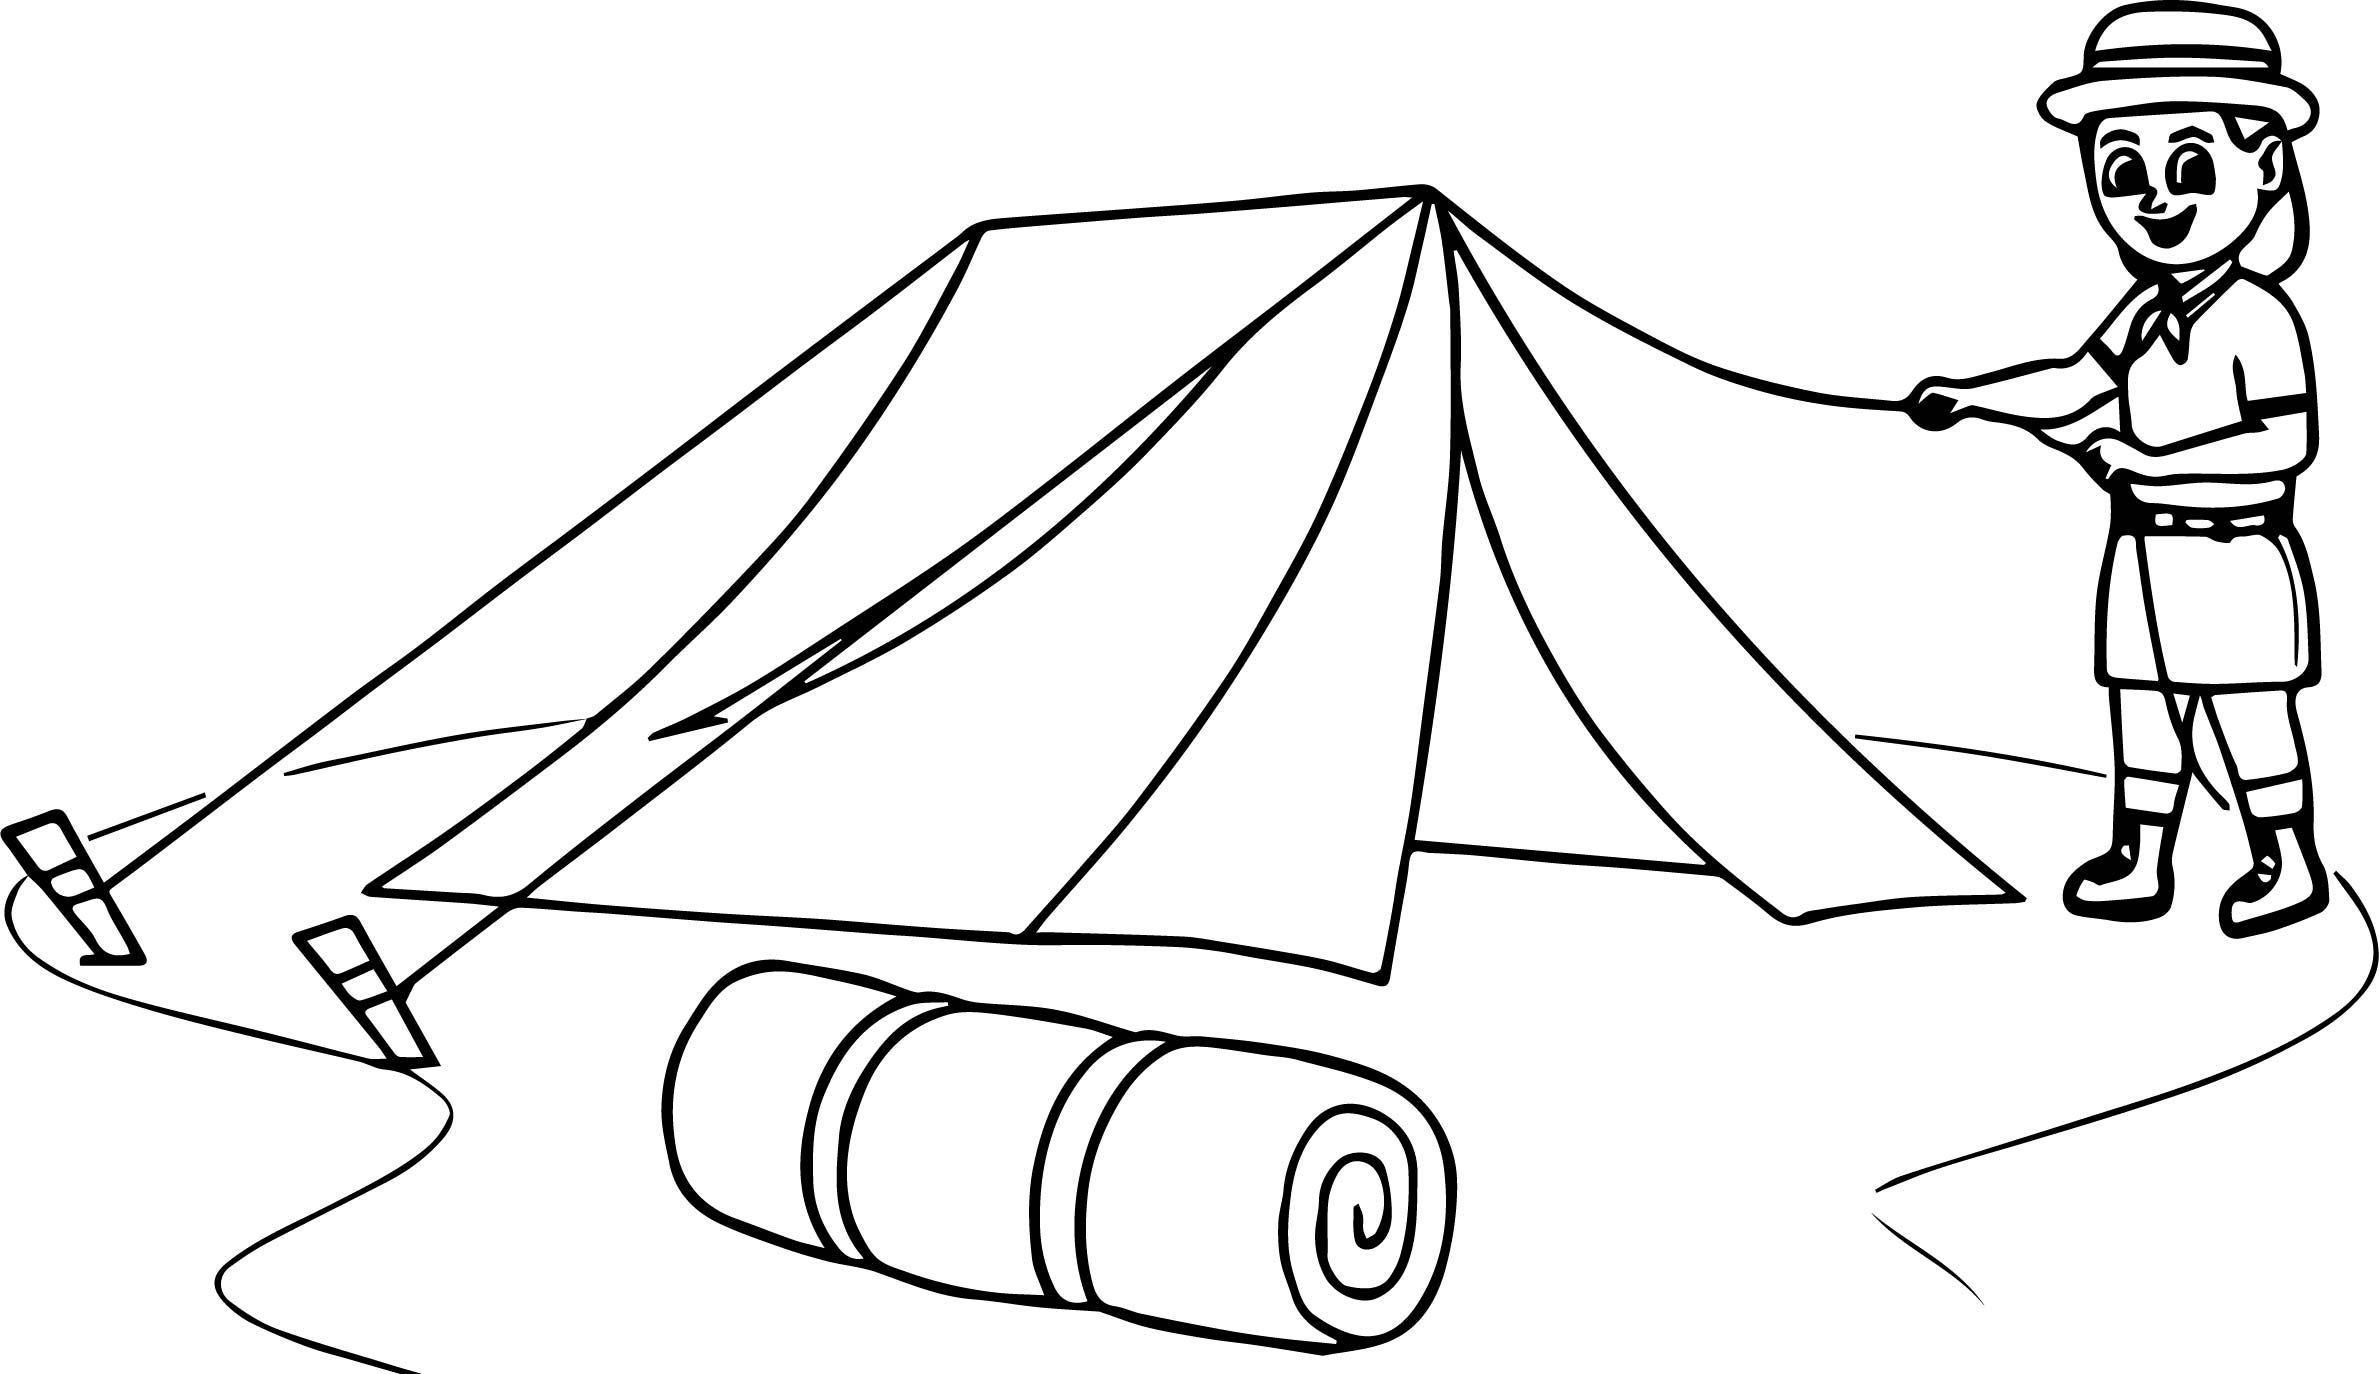 Cool Boy Scout Camping Coloring Page Camping Coloring Pages Boy